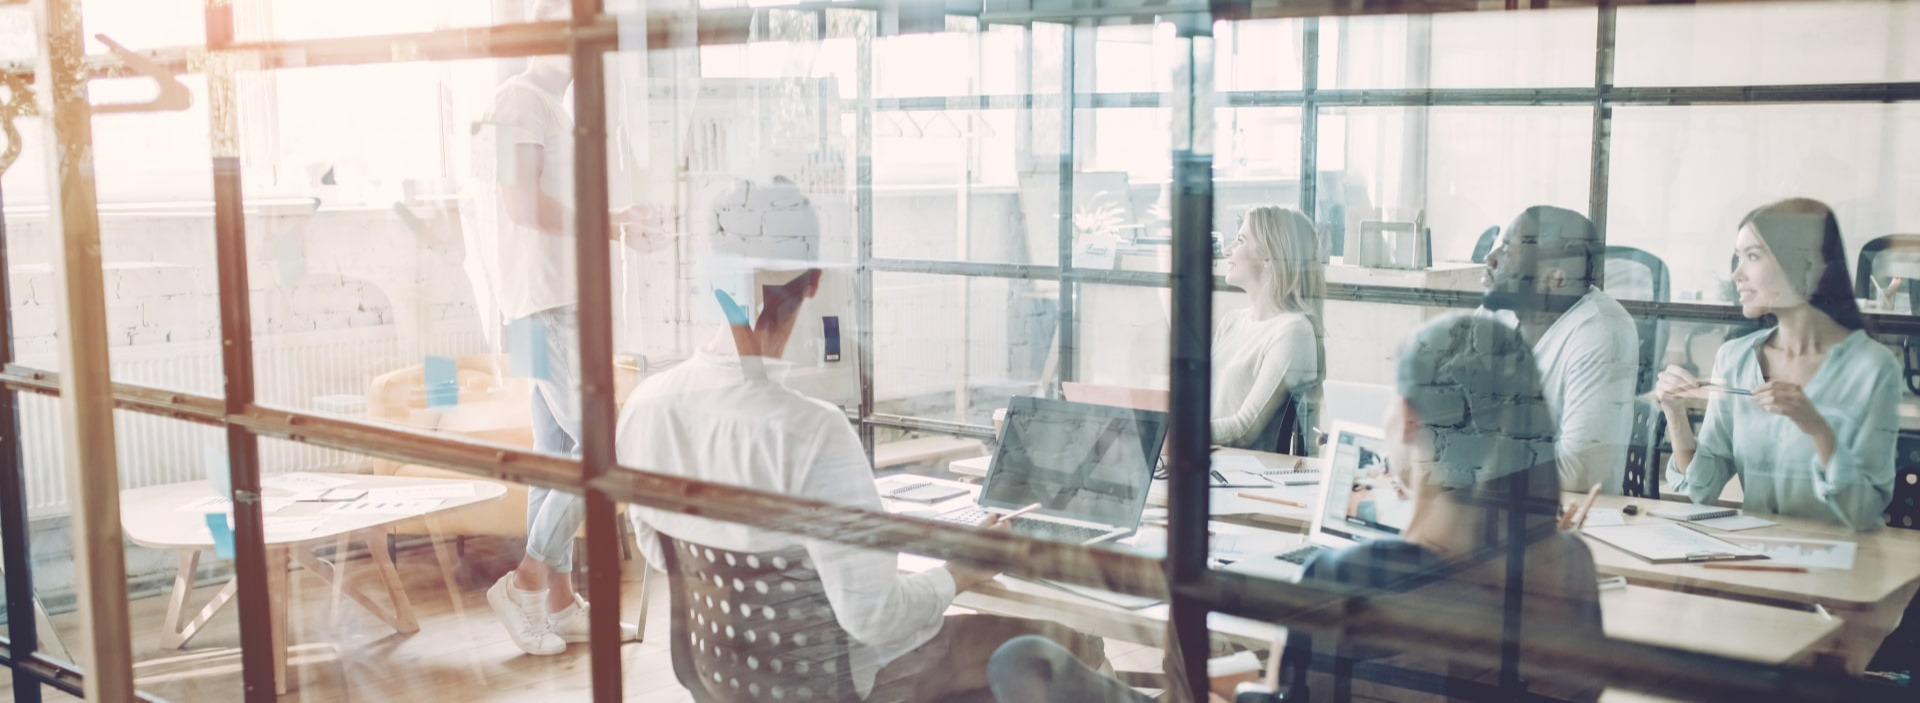 Staff augmentation outsourcing: benefits, top destinations, and best practices